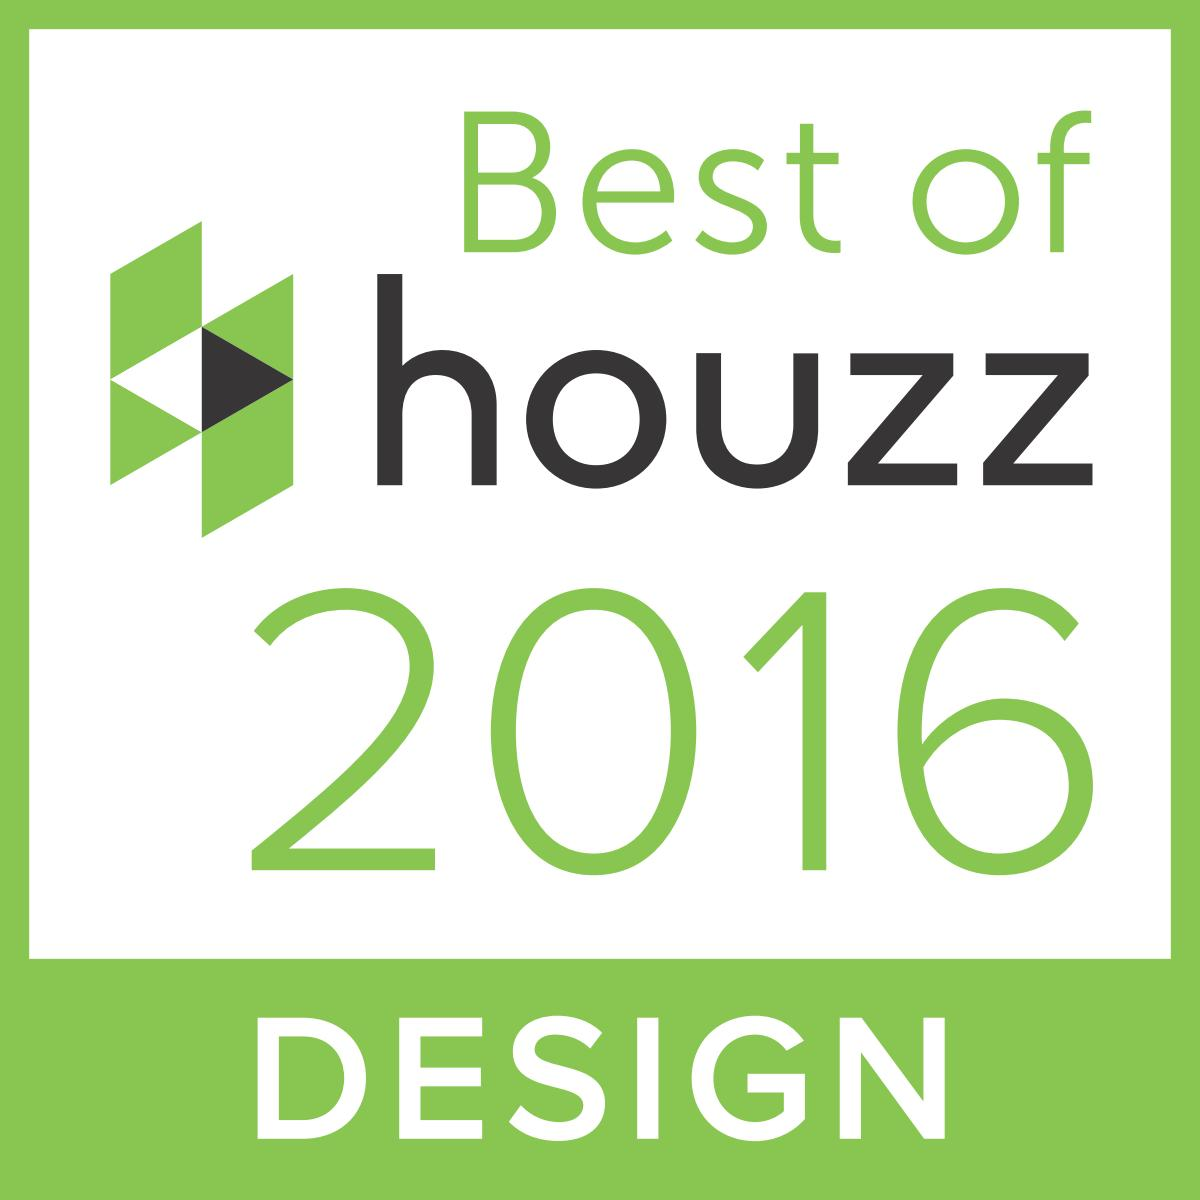 Houzz 2016 Design Award